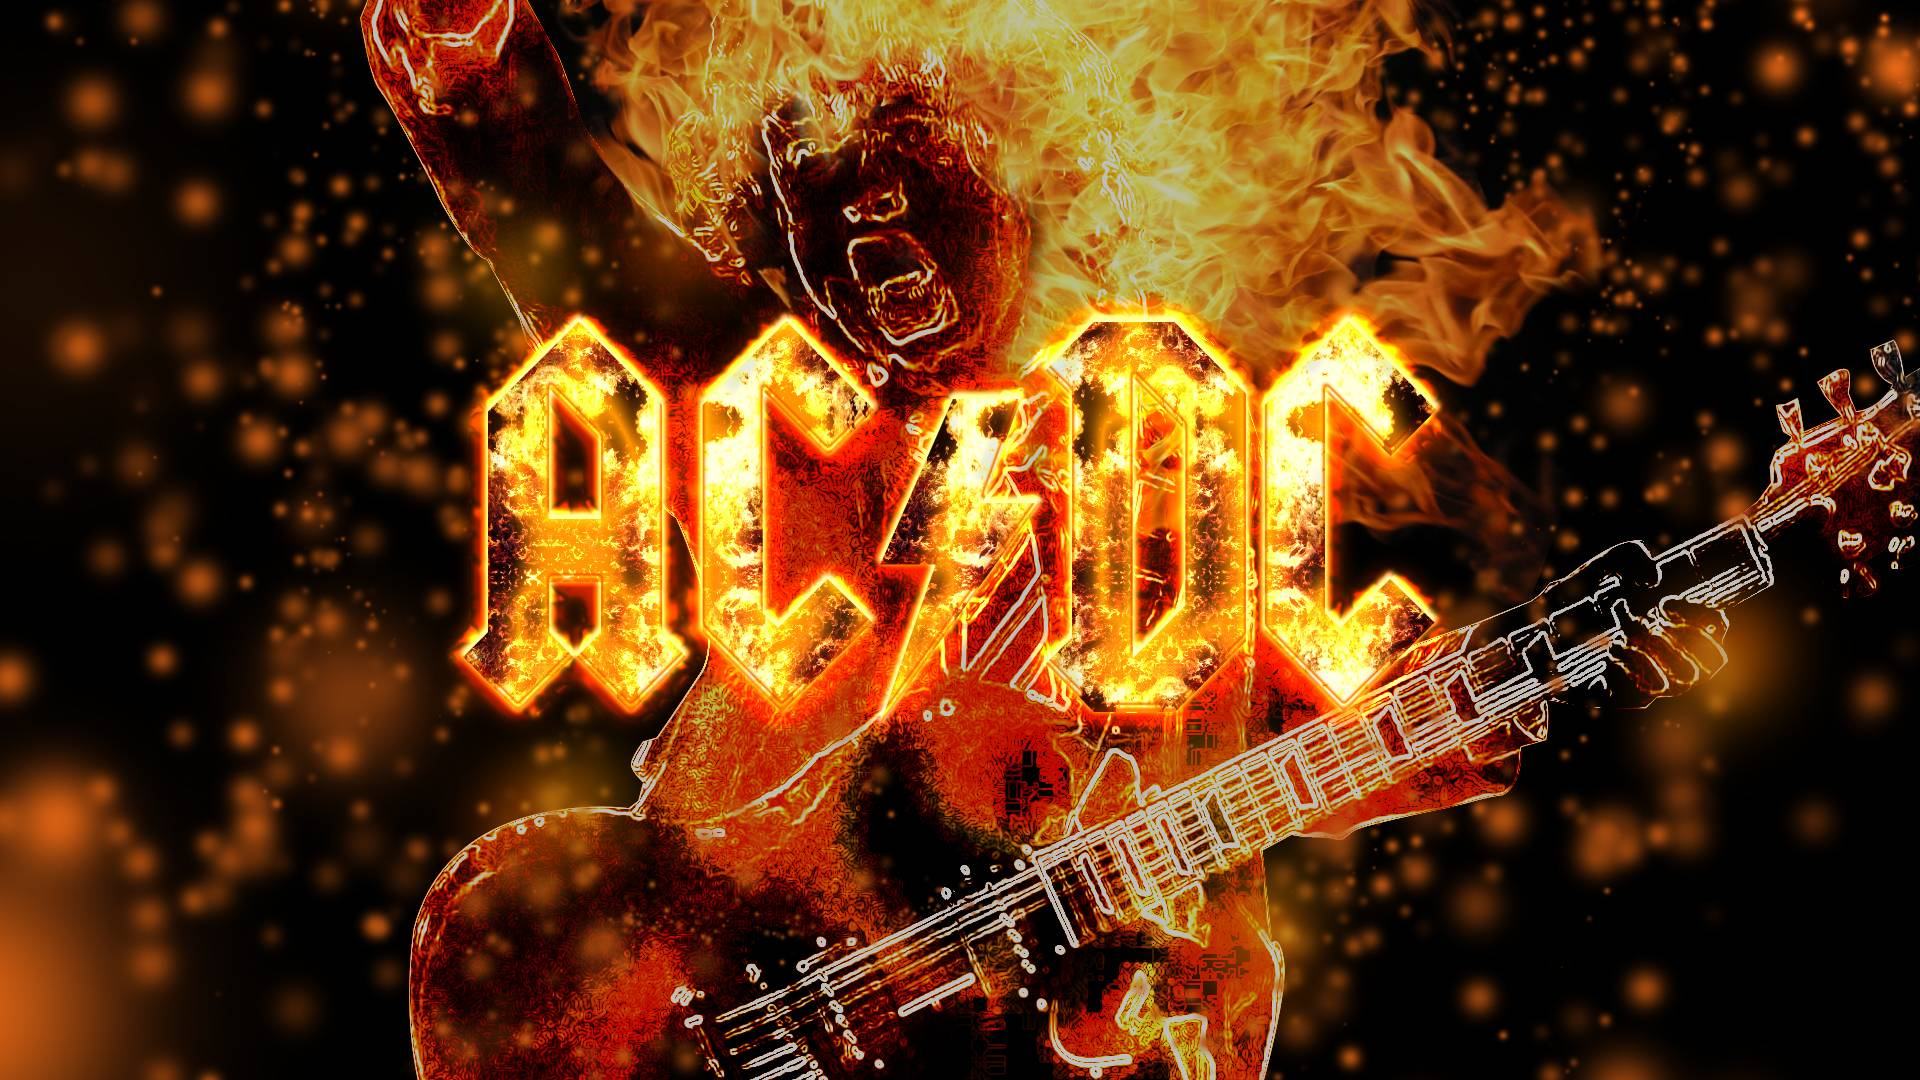 AC/DC Widescreen for desktop